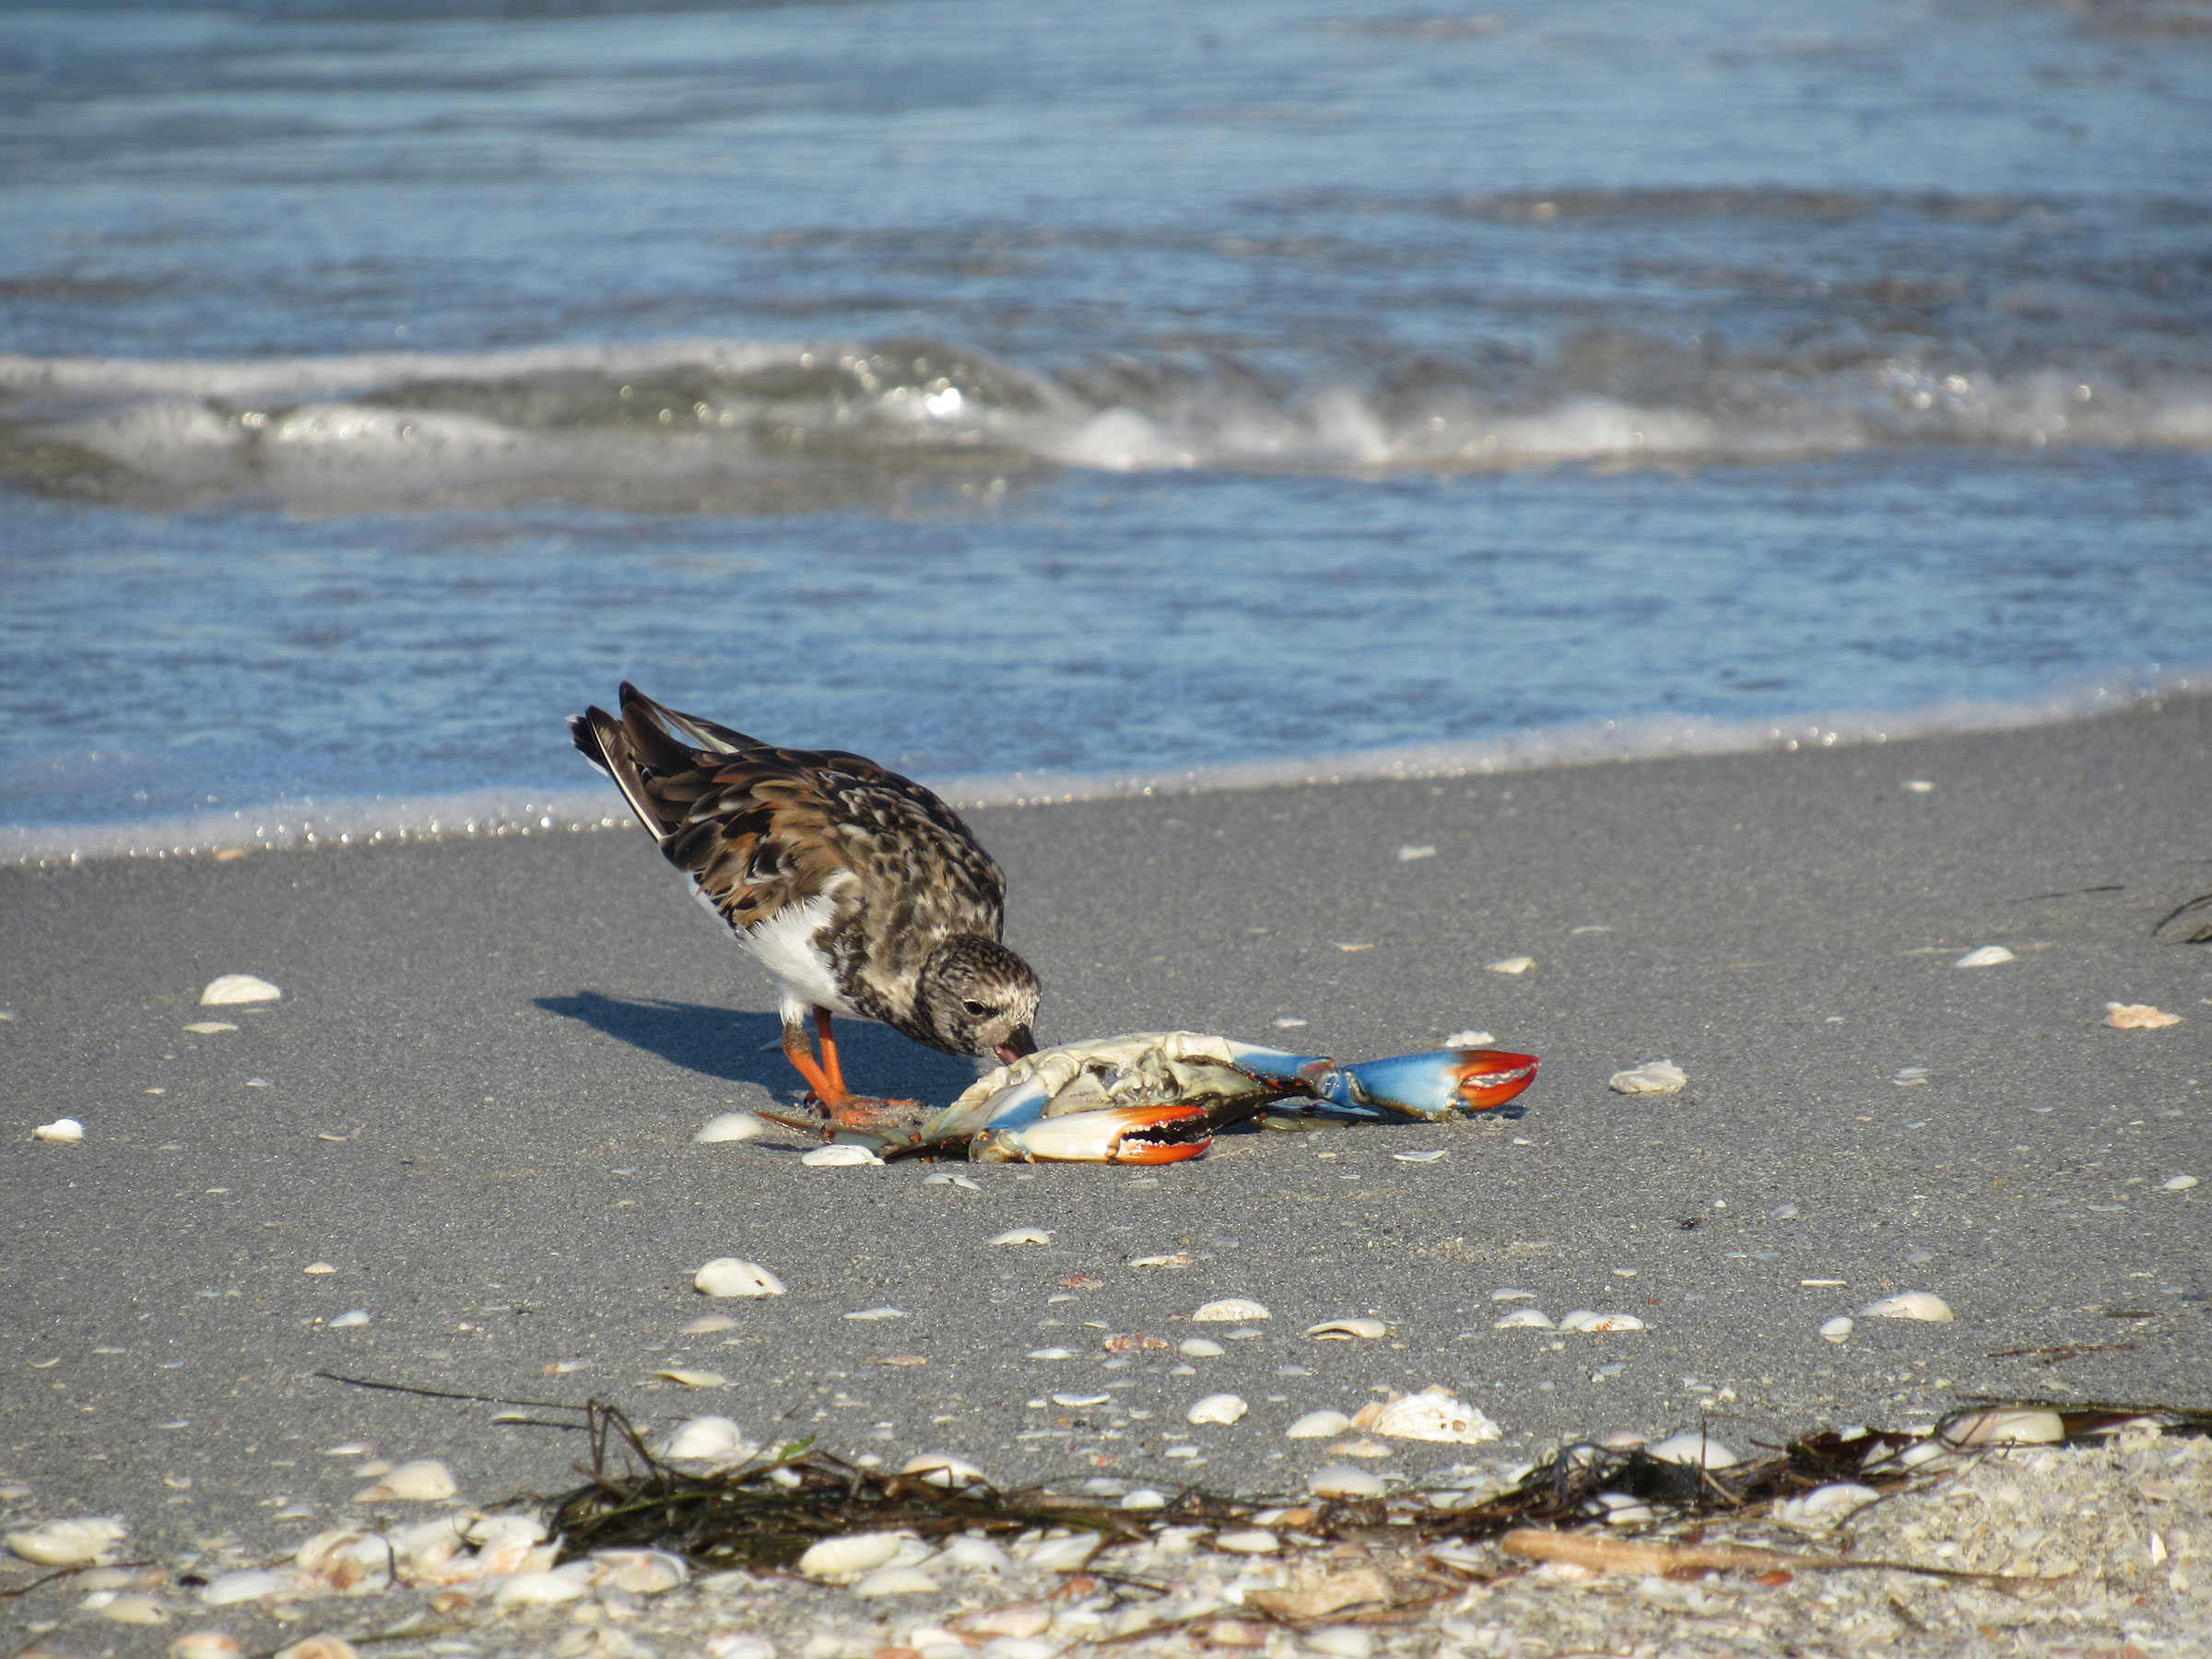 A Ruddy Turnstone snacks on a crab on Sanibel Island. Many migrants' favorite foods like mole crabs and coquinas have died, so the birds turn to other foods to survive. Audrey Albrecht